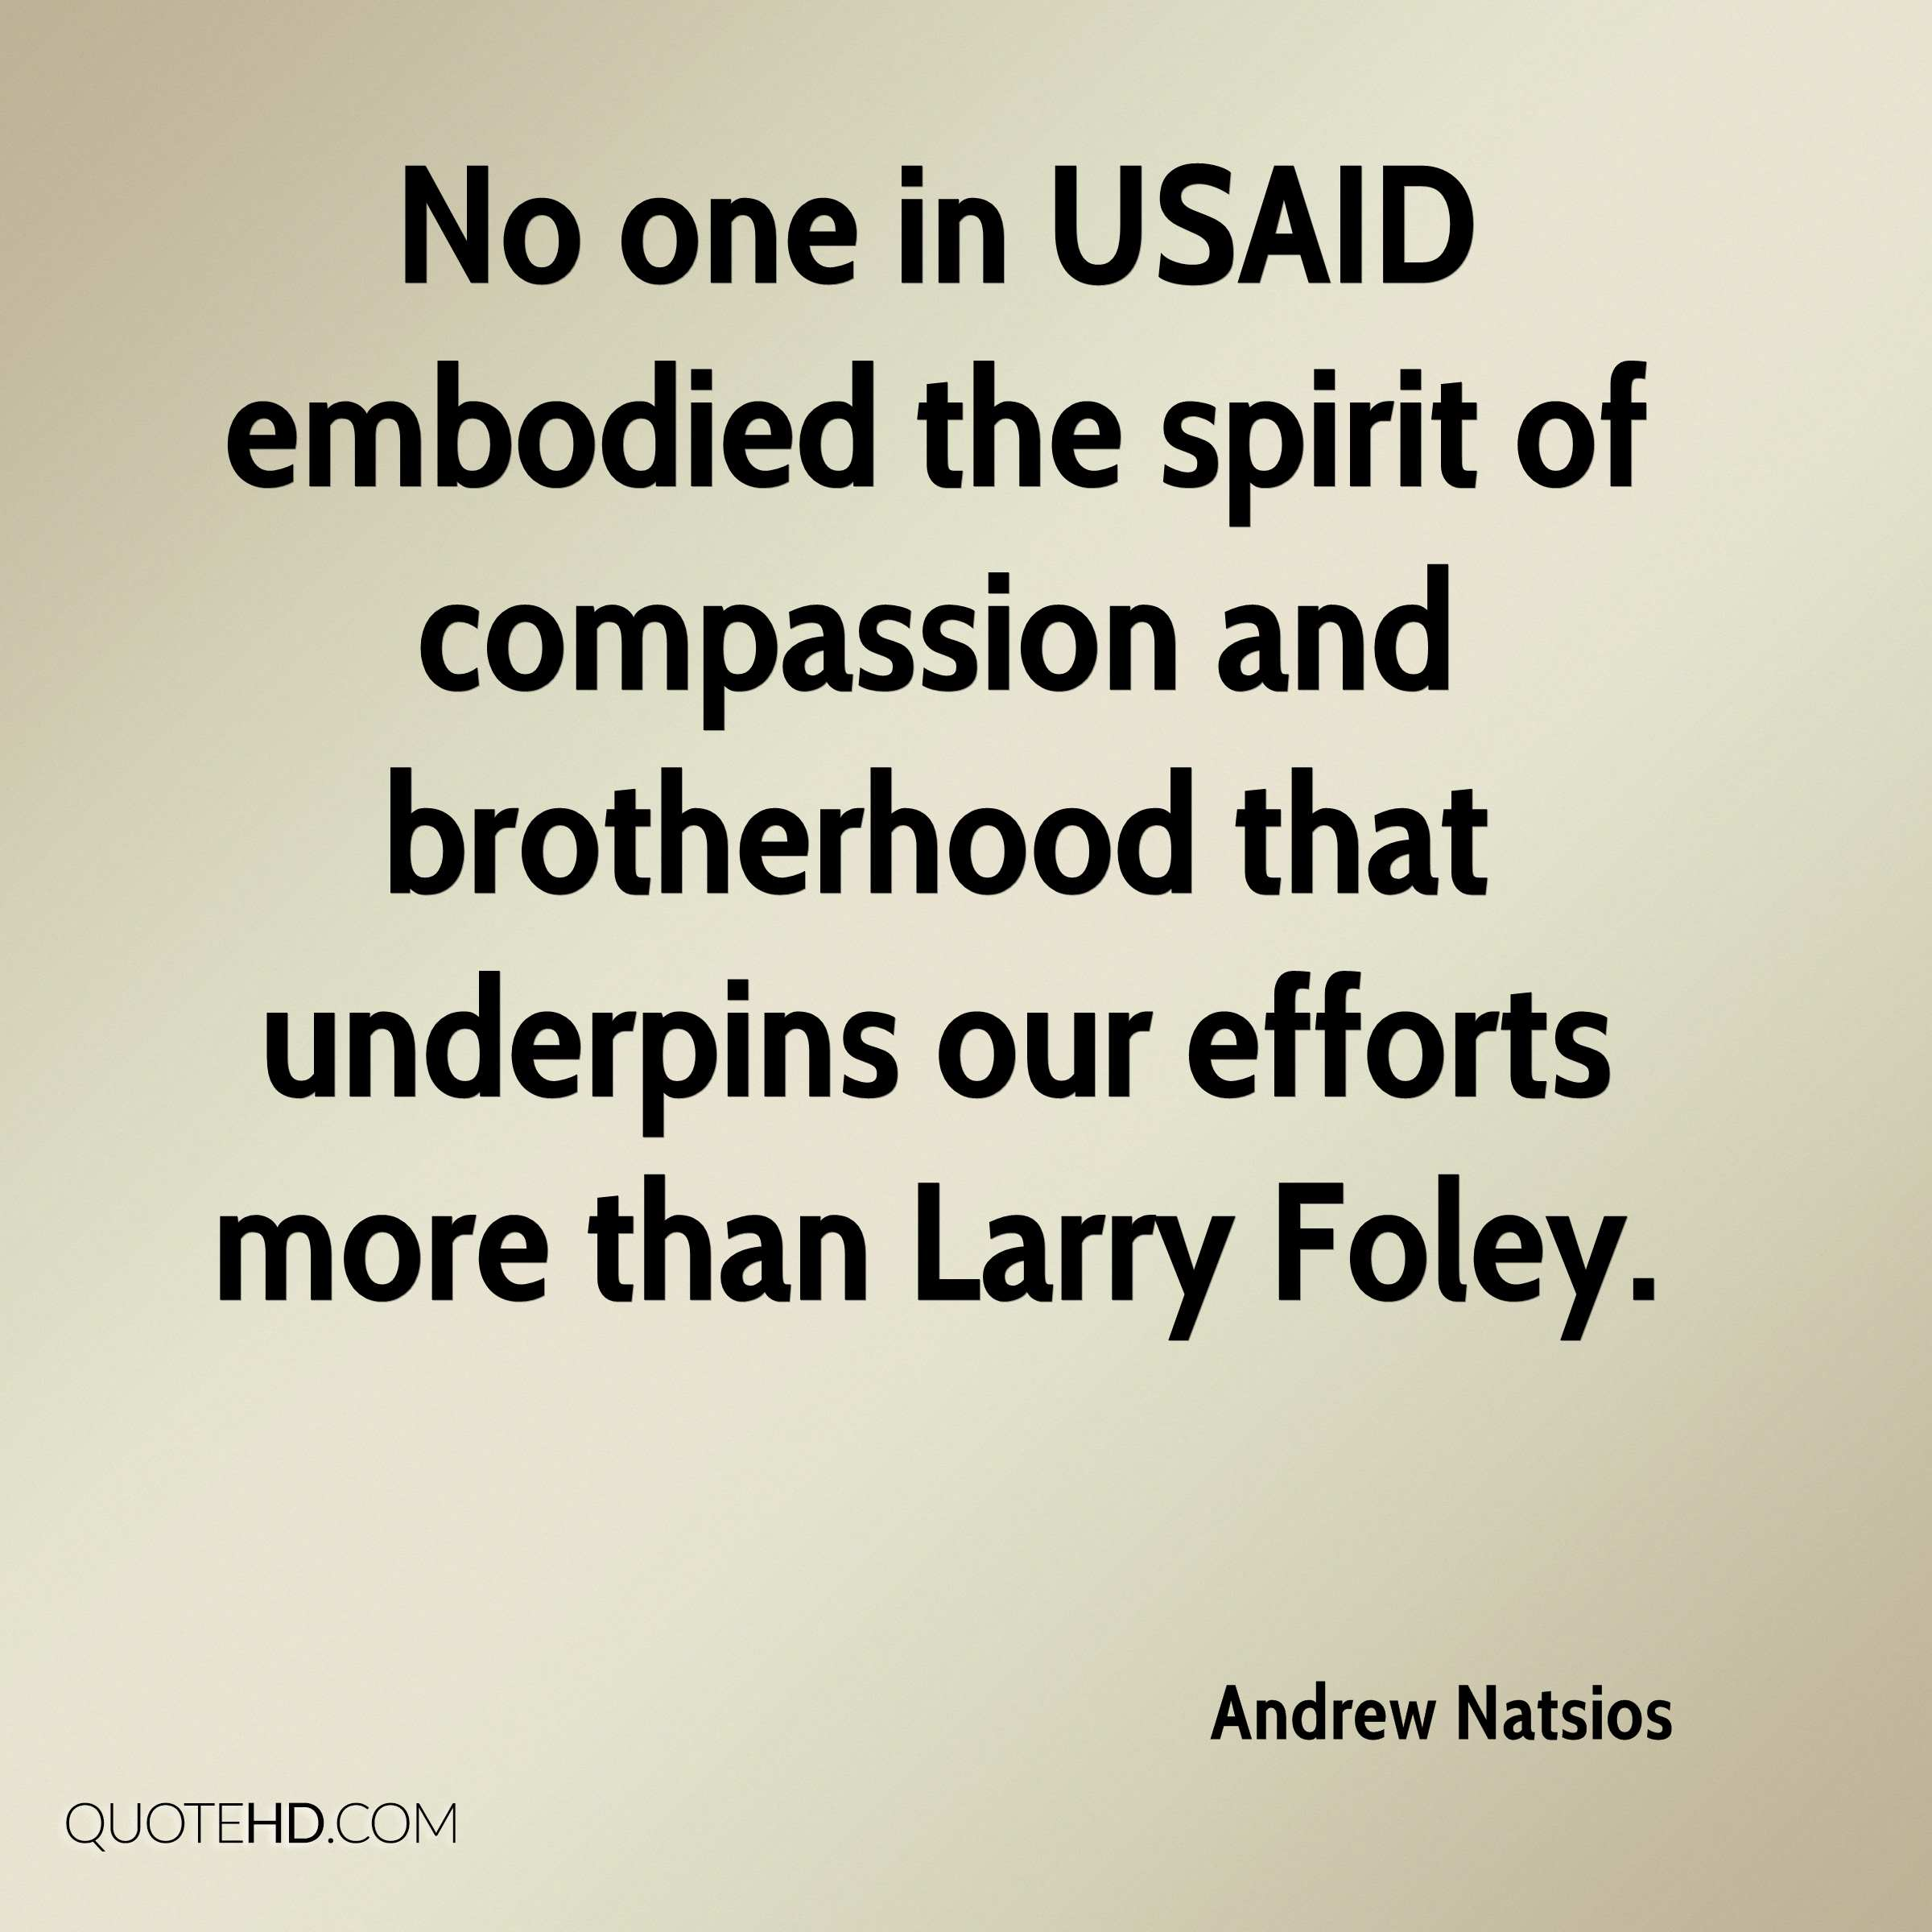 No one in USAID embodied the spirit of compassion and brotherhood that underpins our efforts more than Larry Foley.